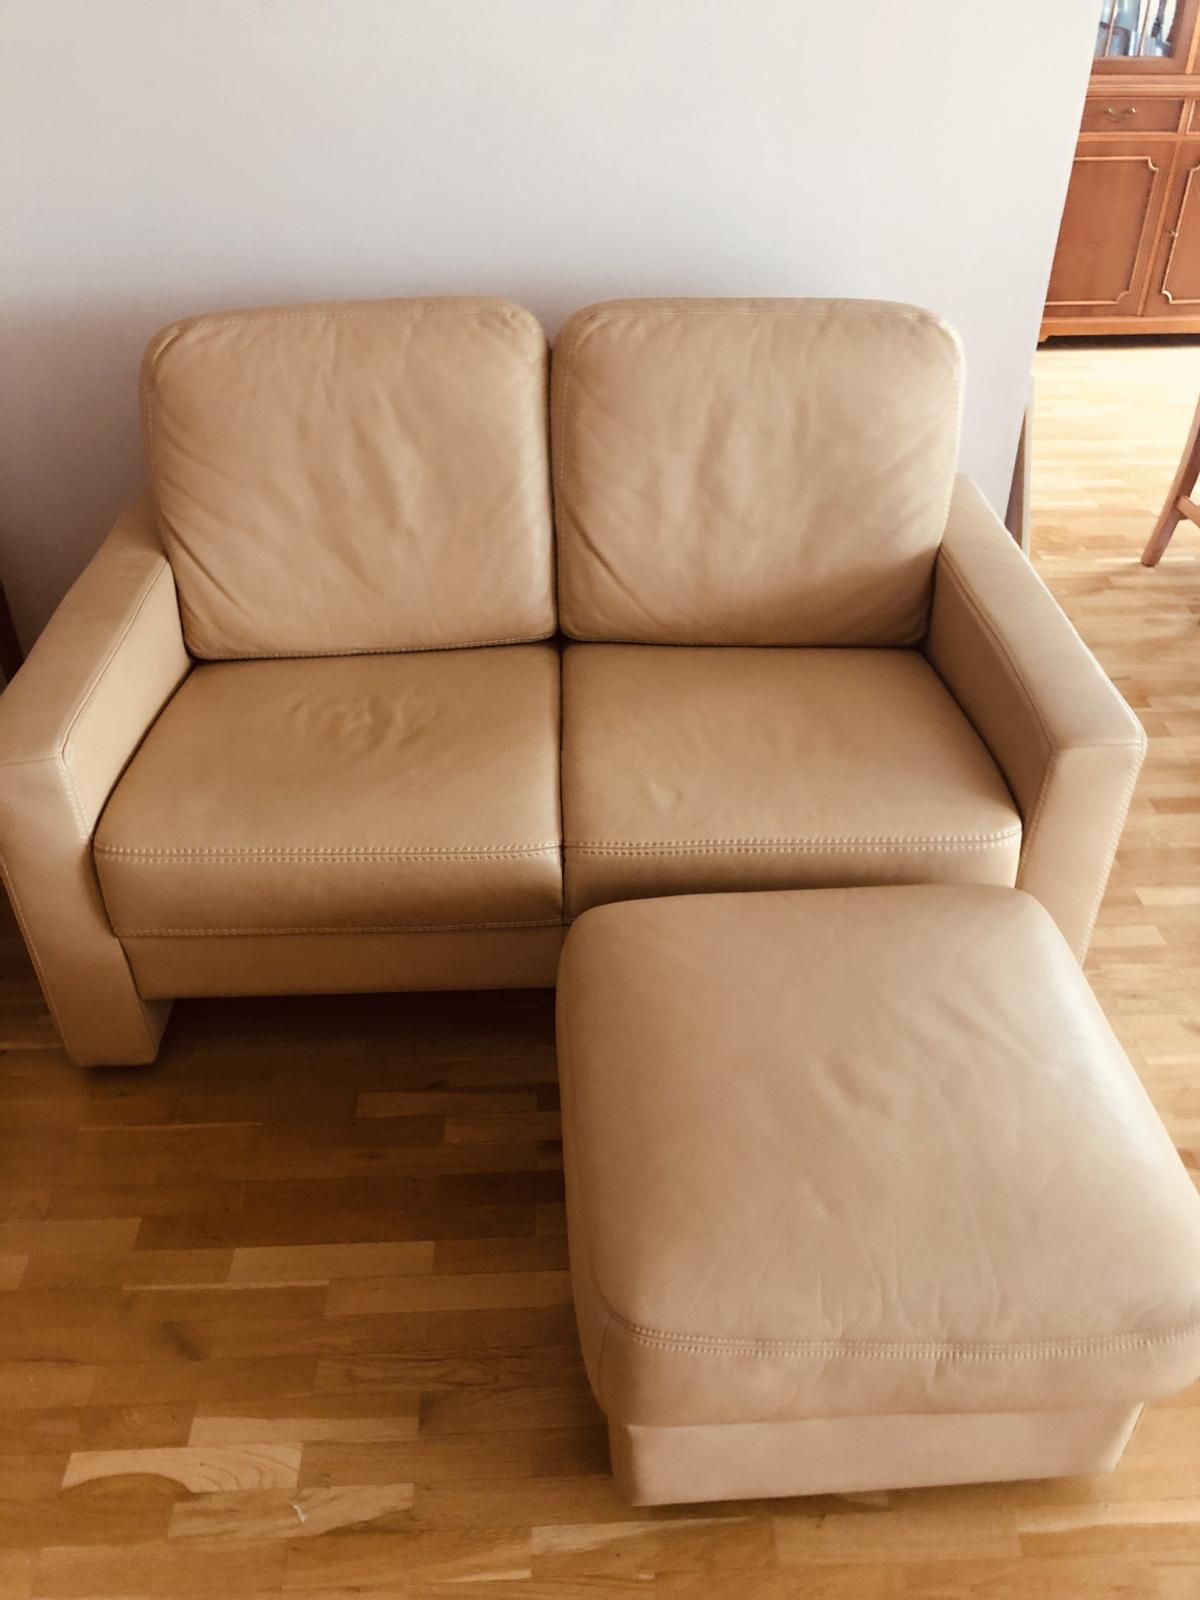 Ikea Bettsofa Holzgestell 2er Couch Fabulous Ikea Delaktig Ersofa With 2er Couch Gallery